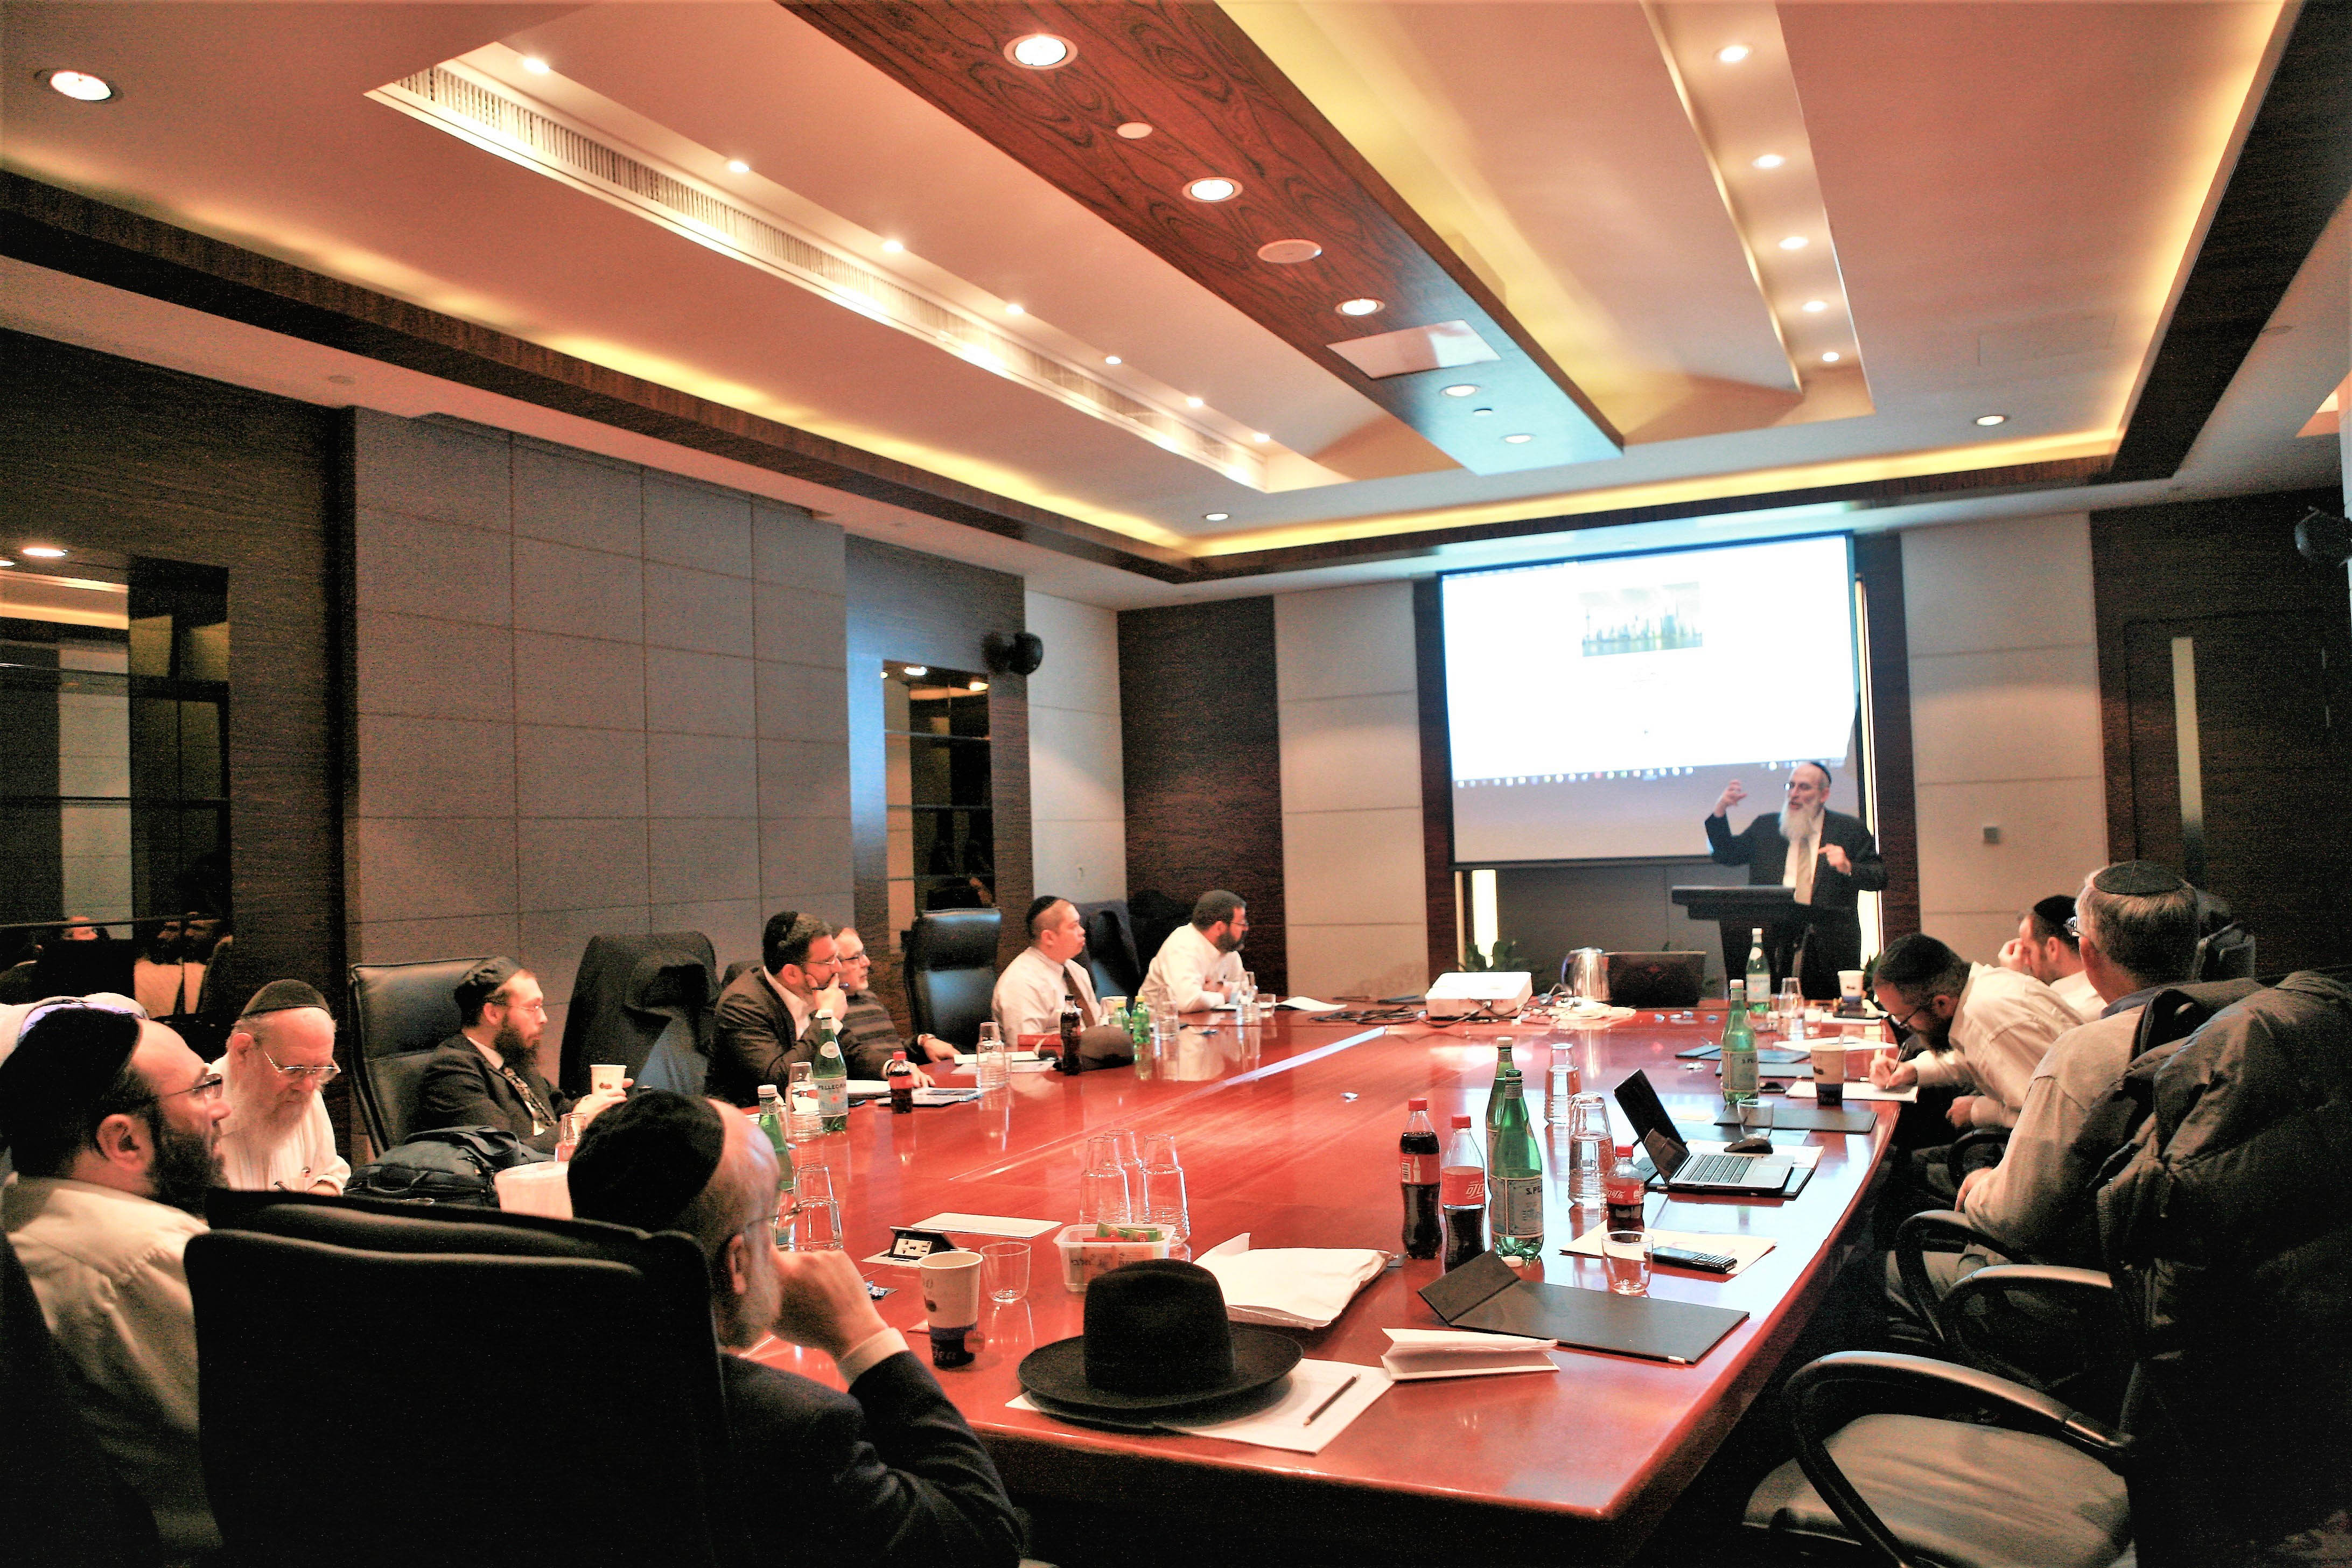 Pan-Asia Kosher Training Seminar Convened by STAR-K in Shanghai